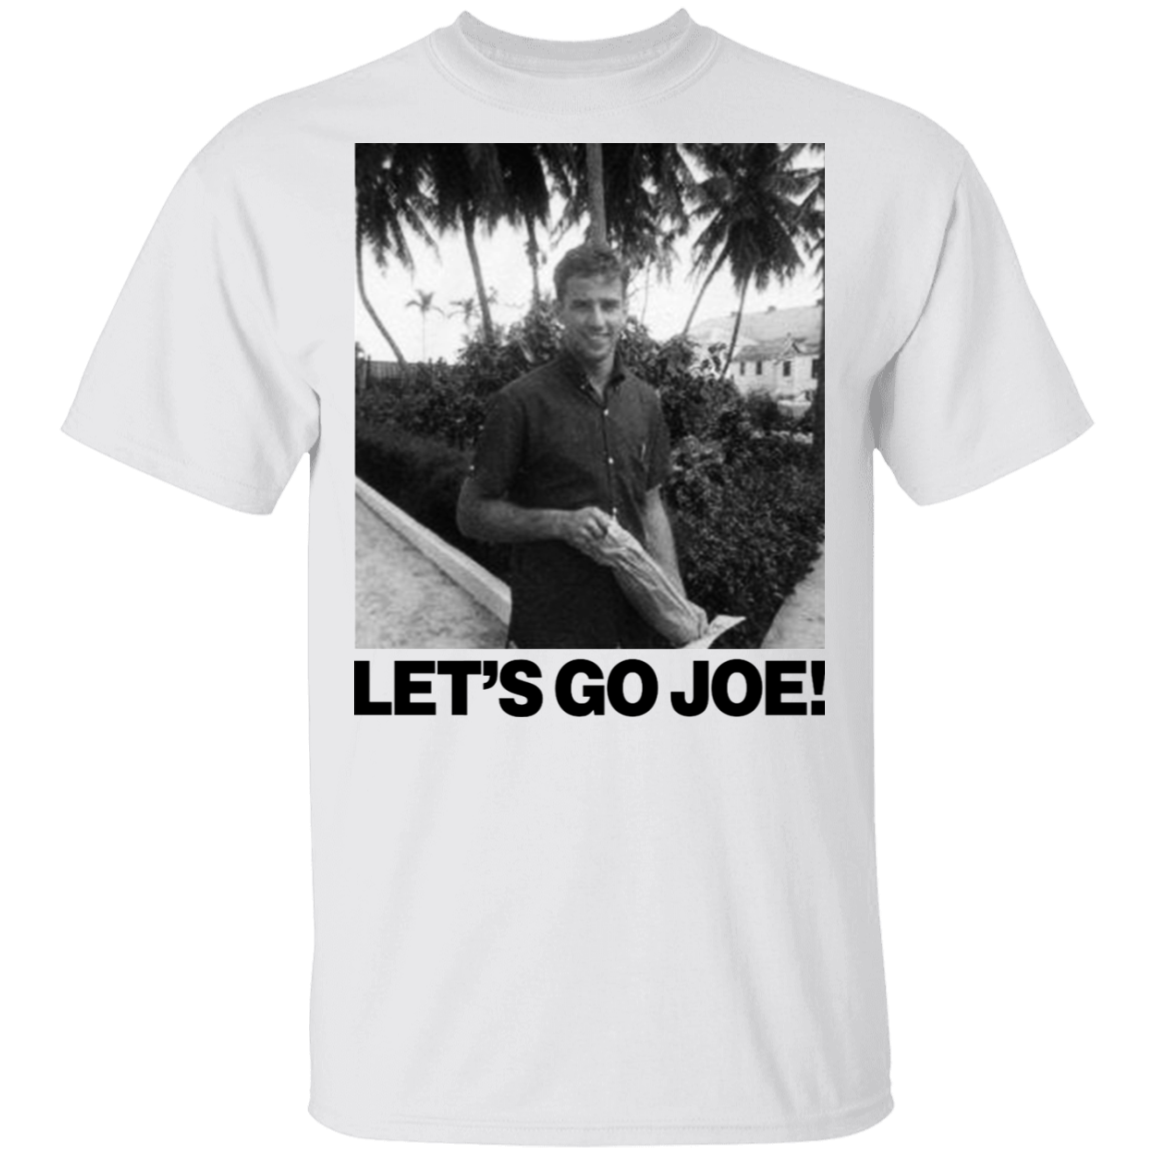 Young Joe Biden Shirt Let's Go Joe T-Shirt Vote For President 2020